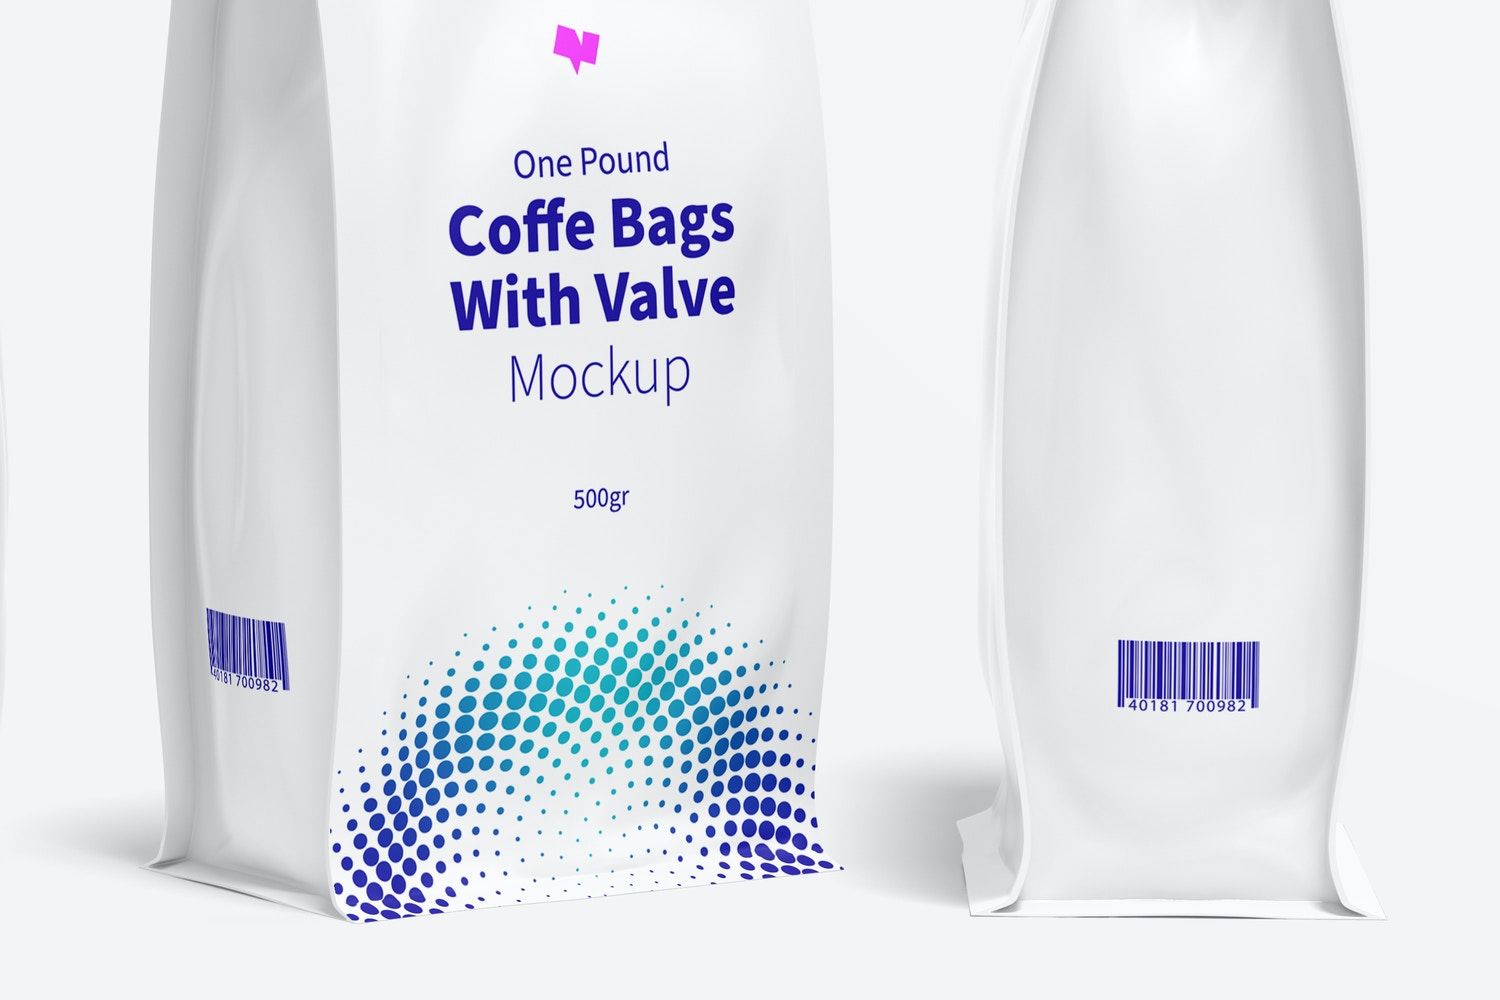 Notice how photorealistic the folds at the bottom of the bag look.